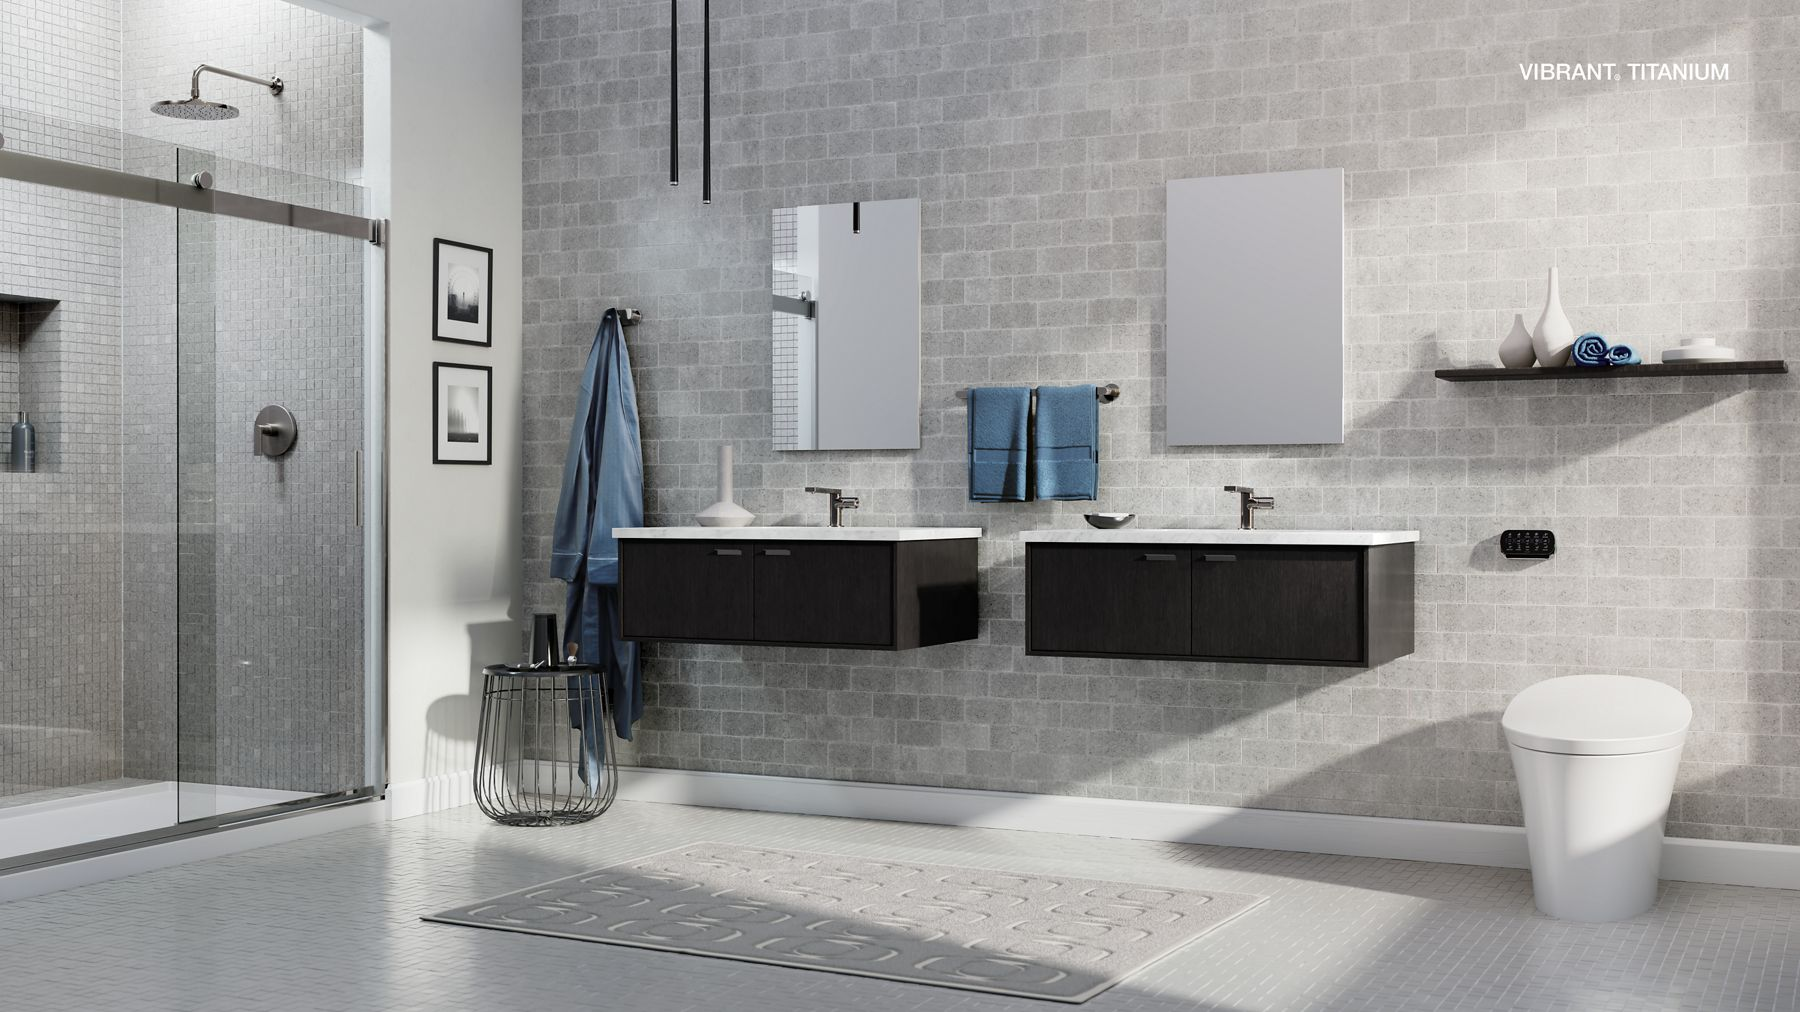 7 Faucet Finishes For Fabulous Bathrooms: Faucet Finishes Enhanced